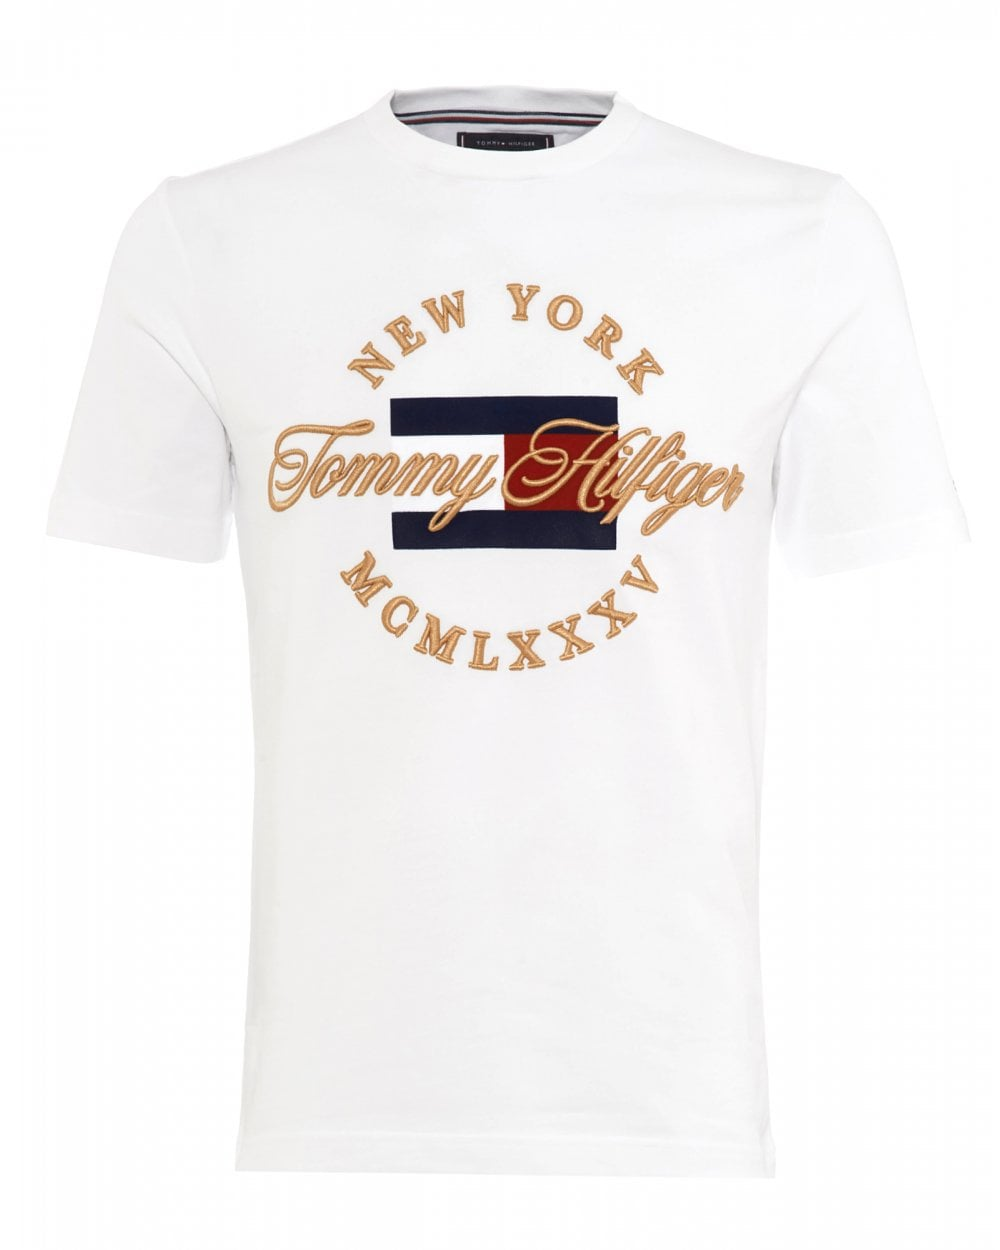 74871bad Tommy Hilfiger Mens NY Script Icon T-Shirt, Bright White Tee